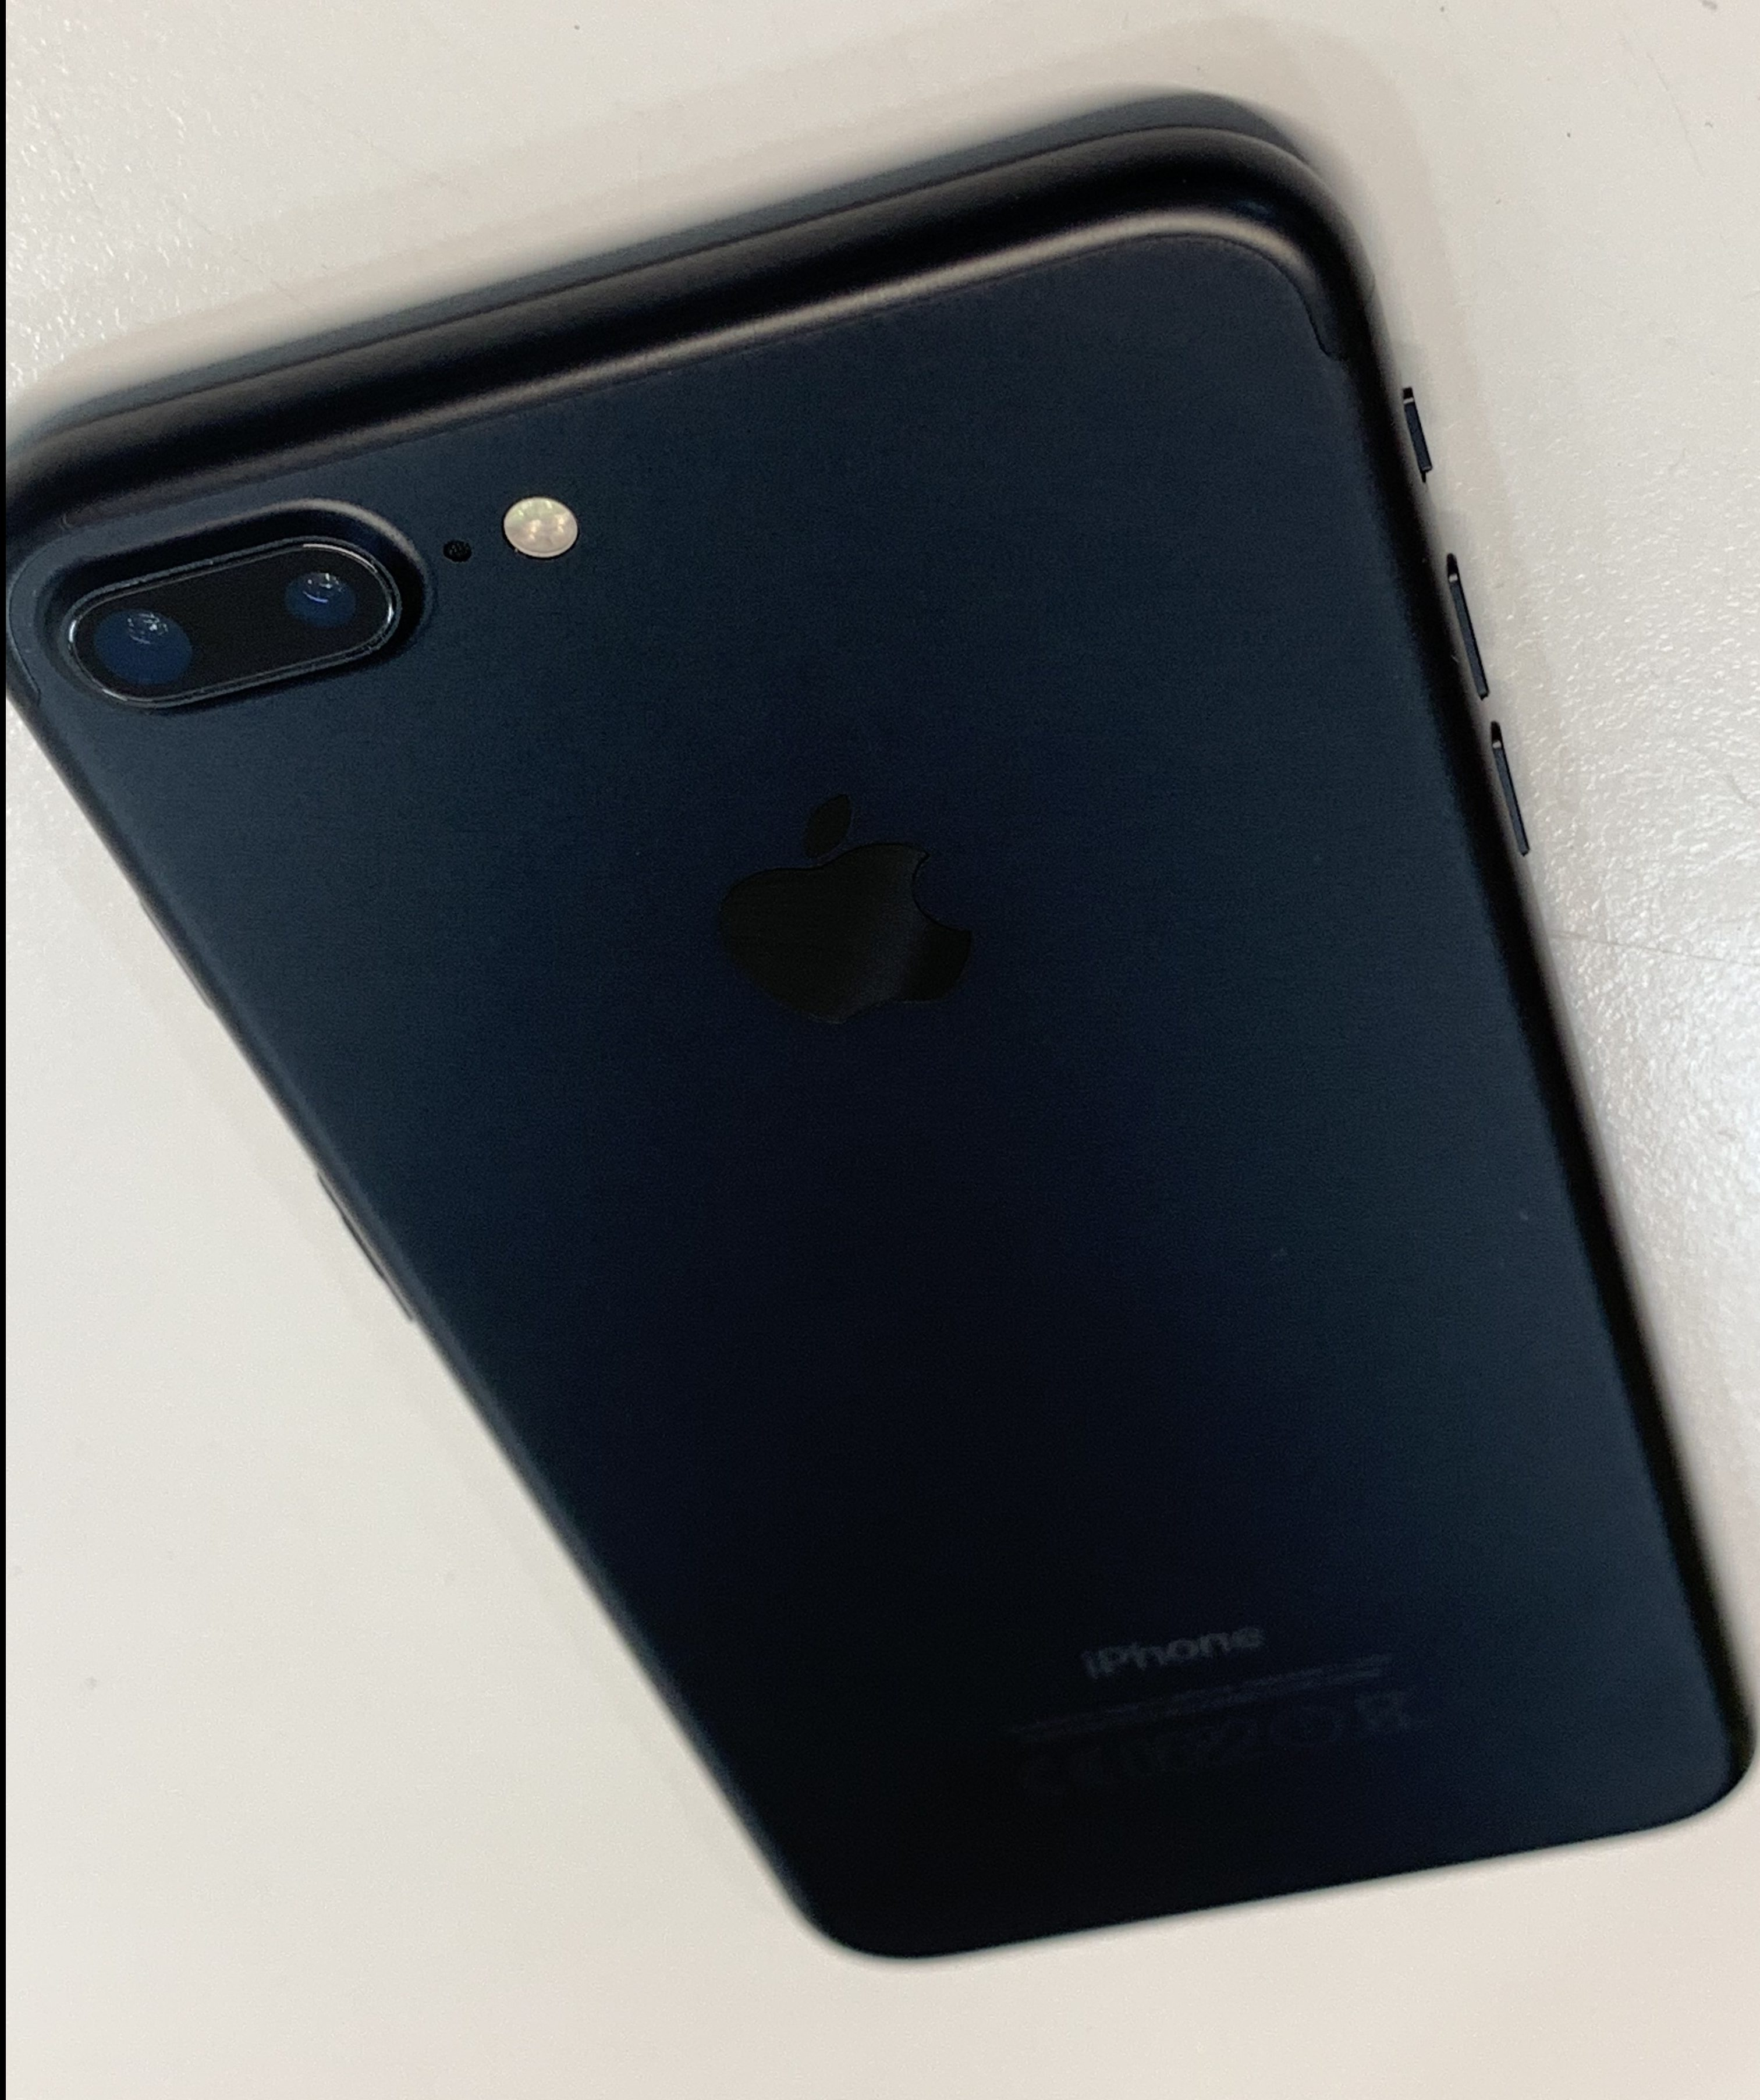 iPhone 7 Plus 128GB, 128GB, Black, imagen 6